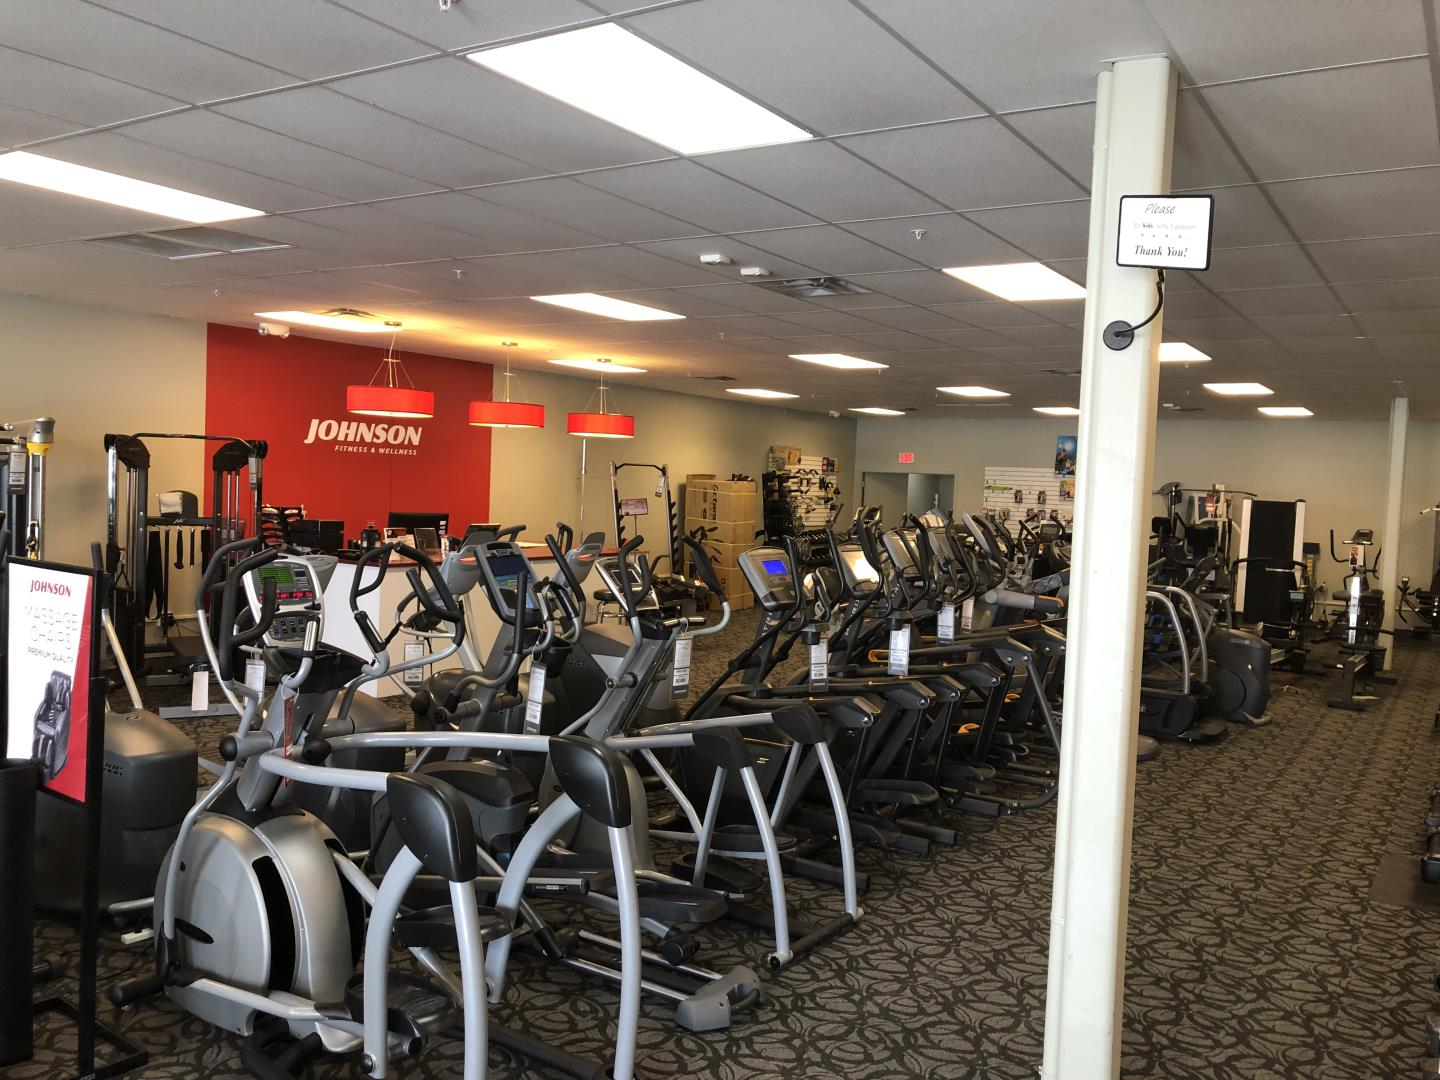 Johnson Fitness & Wellness - Omaha, NE